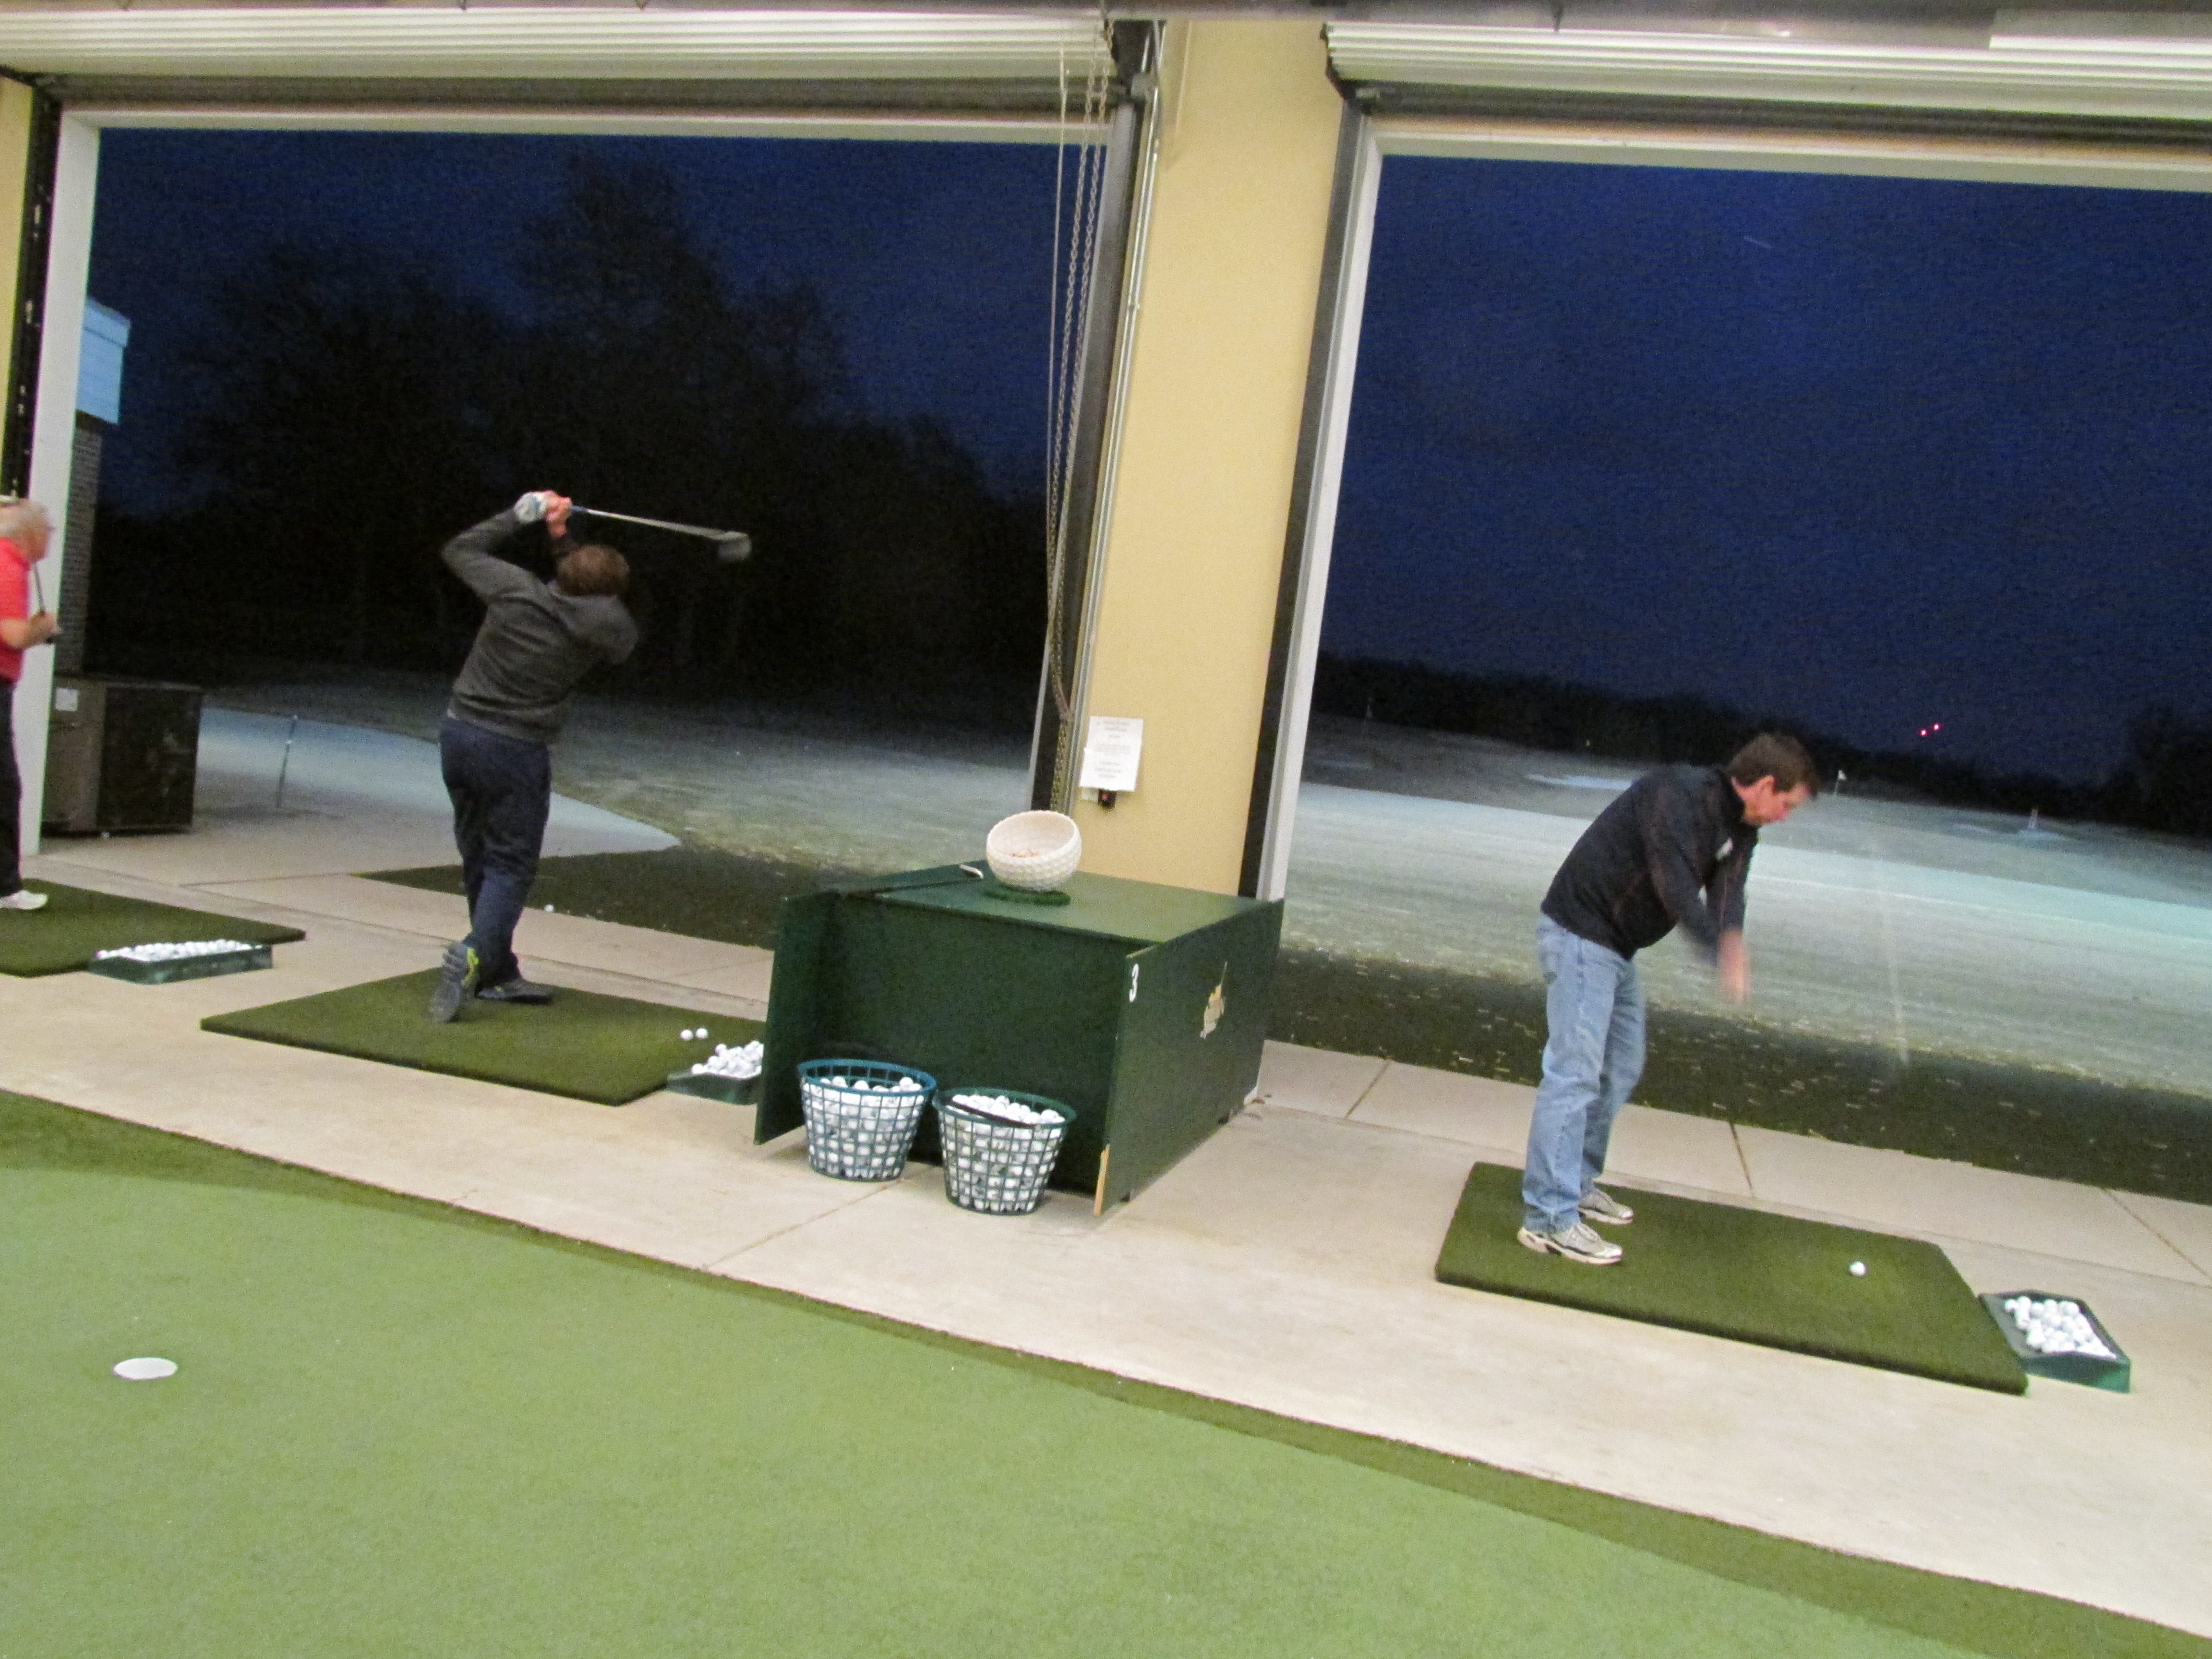 Golfers can spend and event hitting from inside into the outdoor range at Cantigny's state-of-the-art Academy.